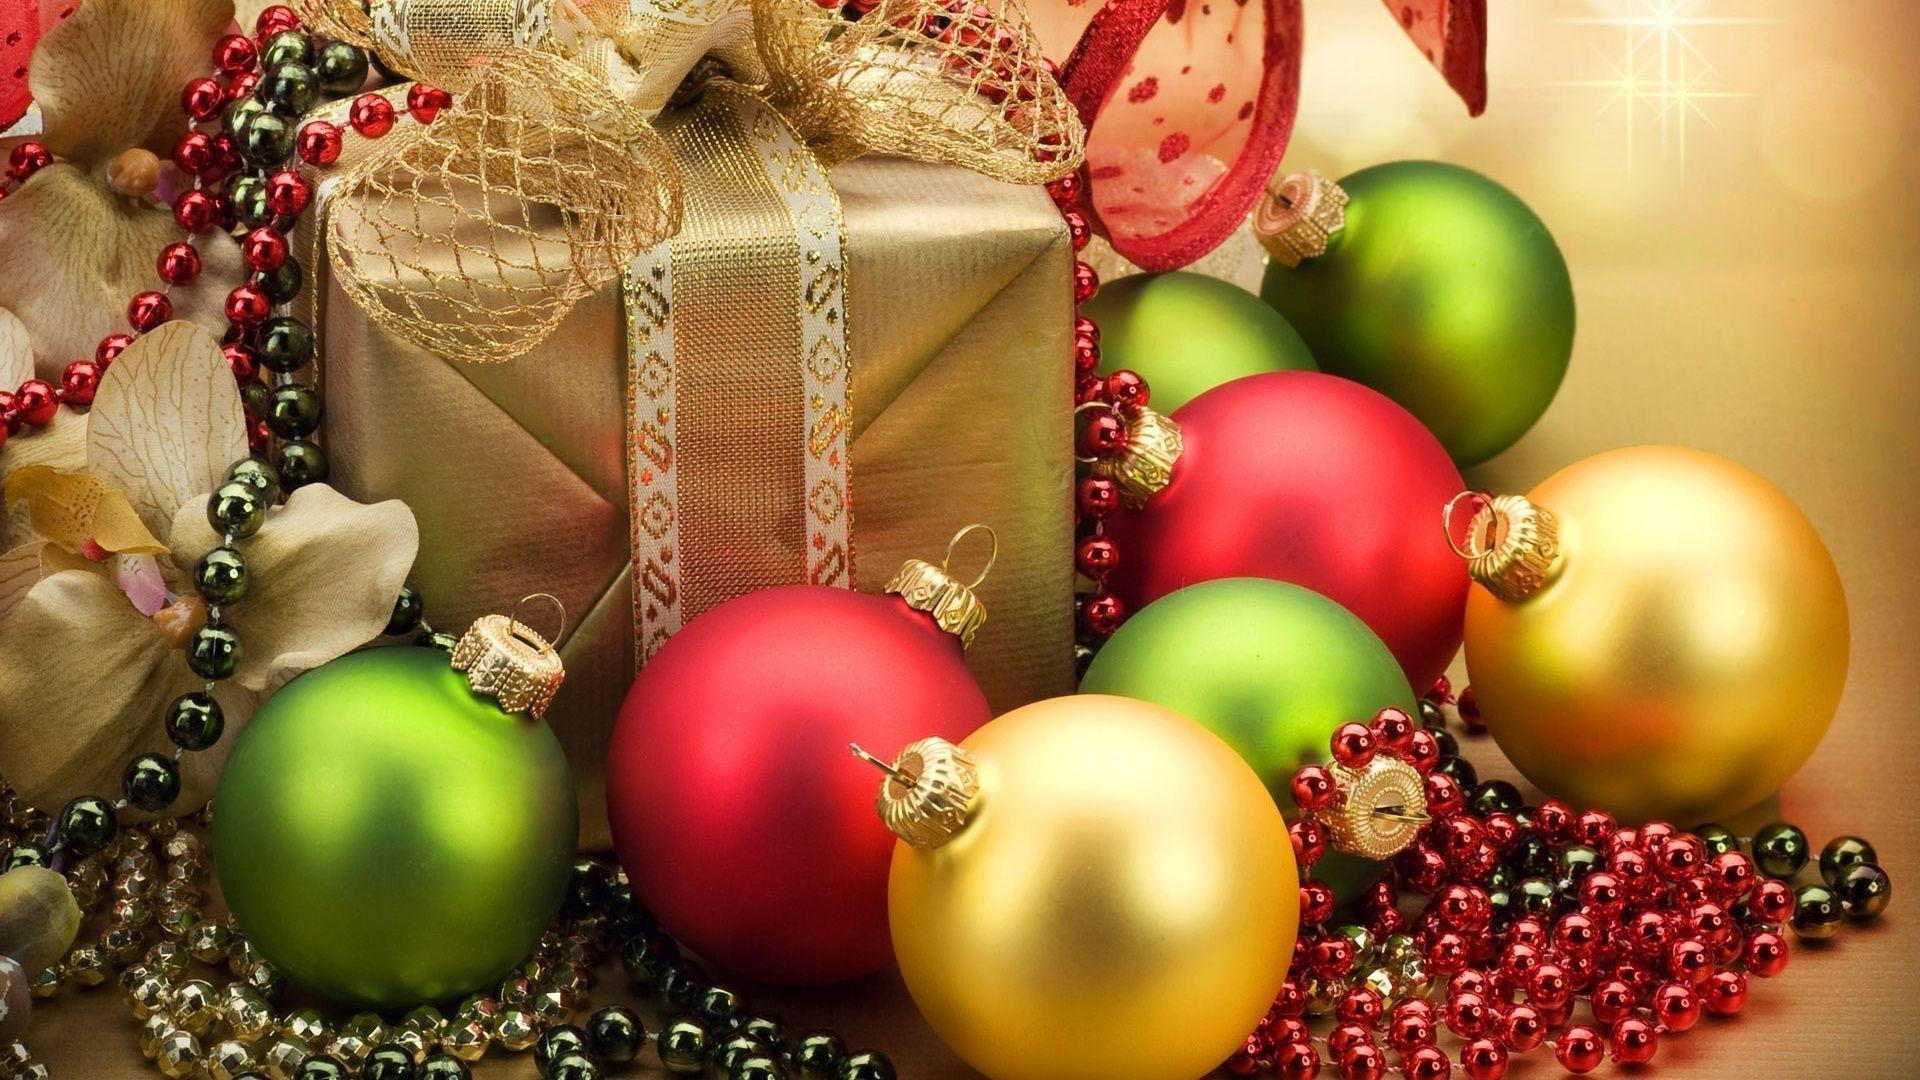 Christmas Ornaments Pictures - HD Wallpapers Inn